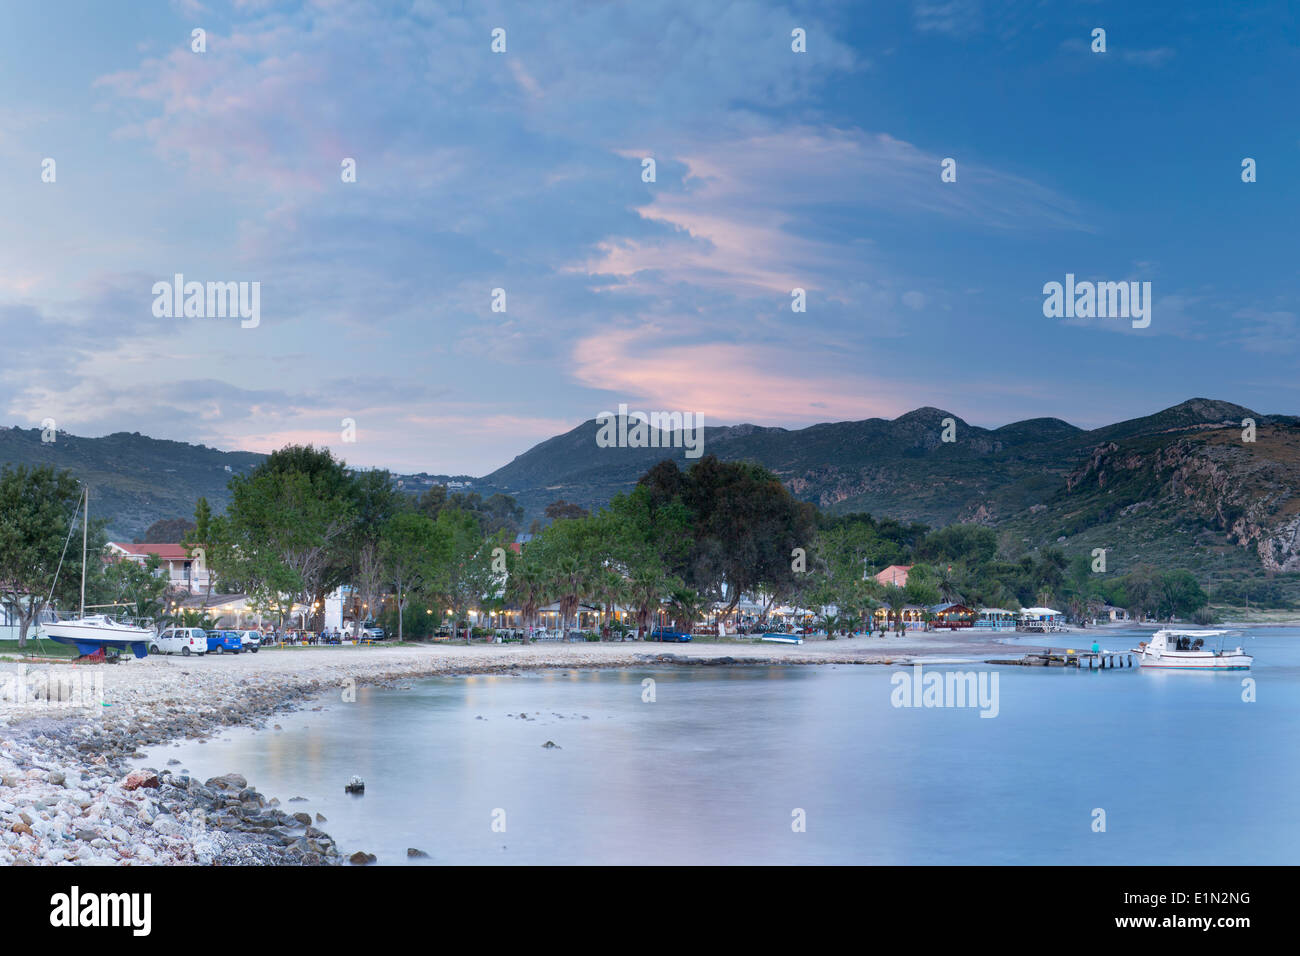 Katelios Harbour, Kefalonia in the evening as the sun sets casting pink clouds in the sky. Stock Photo